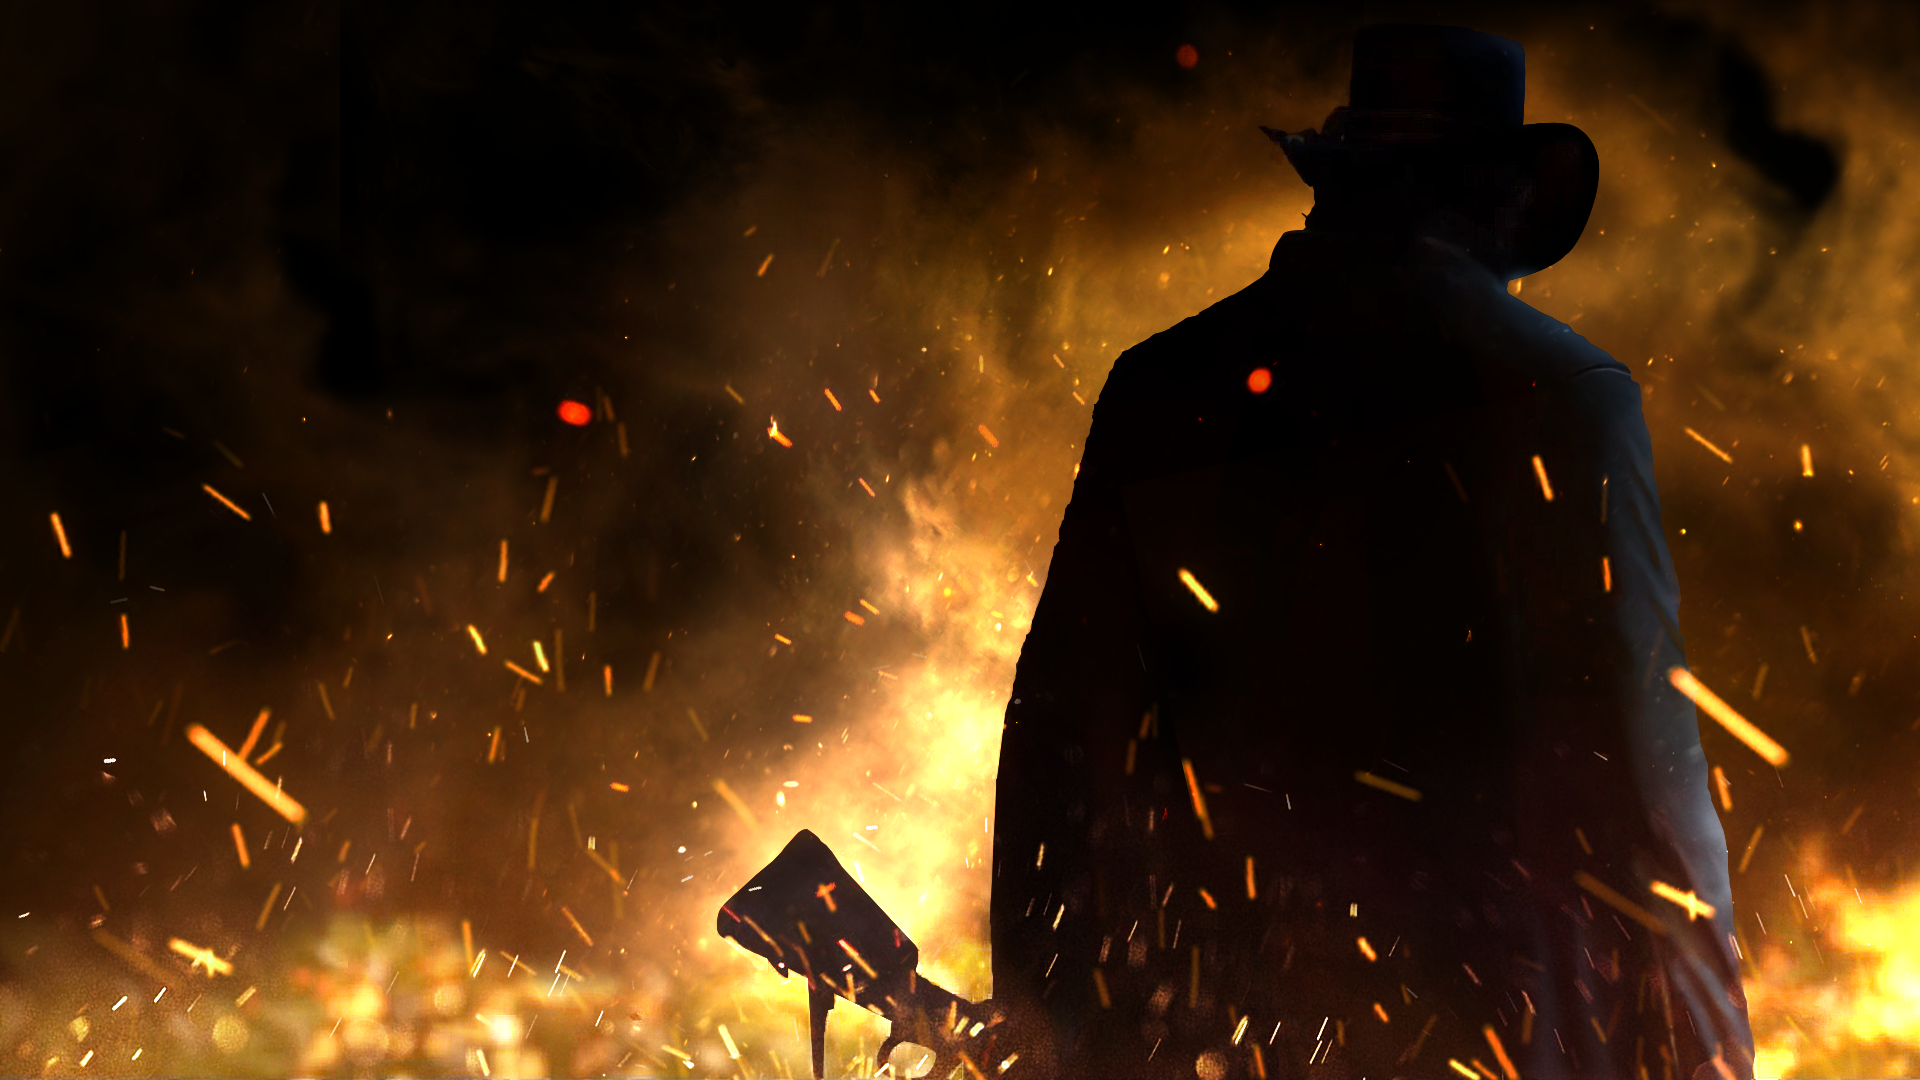 Red Dead Redemption 2 Cleaned Trailer Wallpaper By Muusedesign